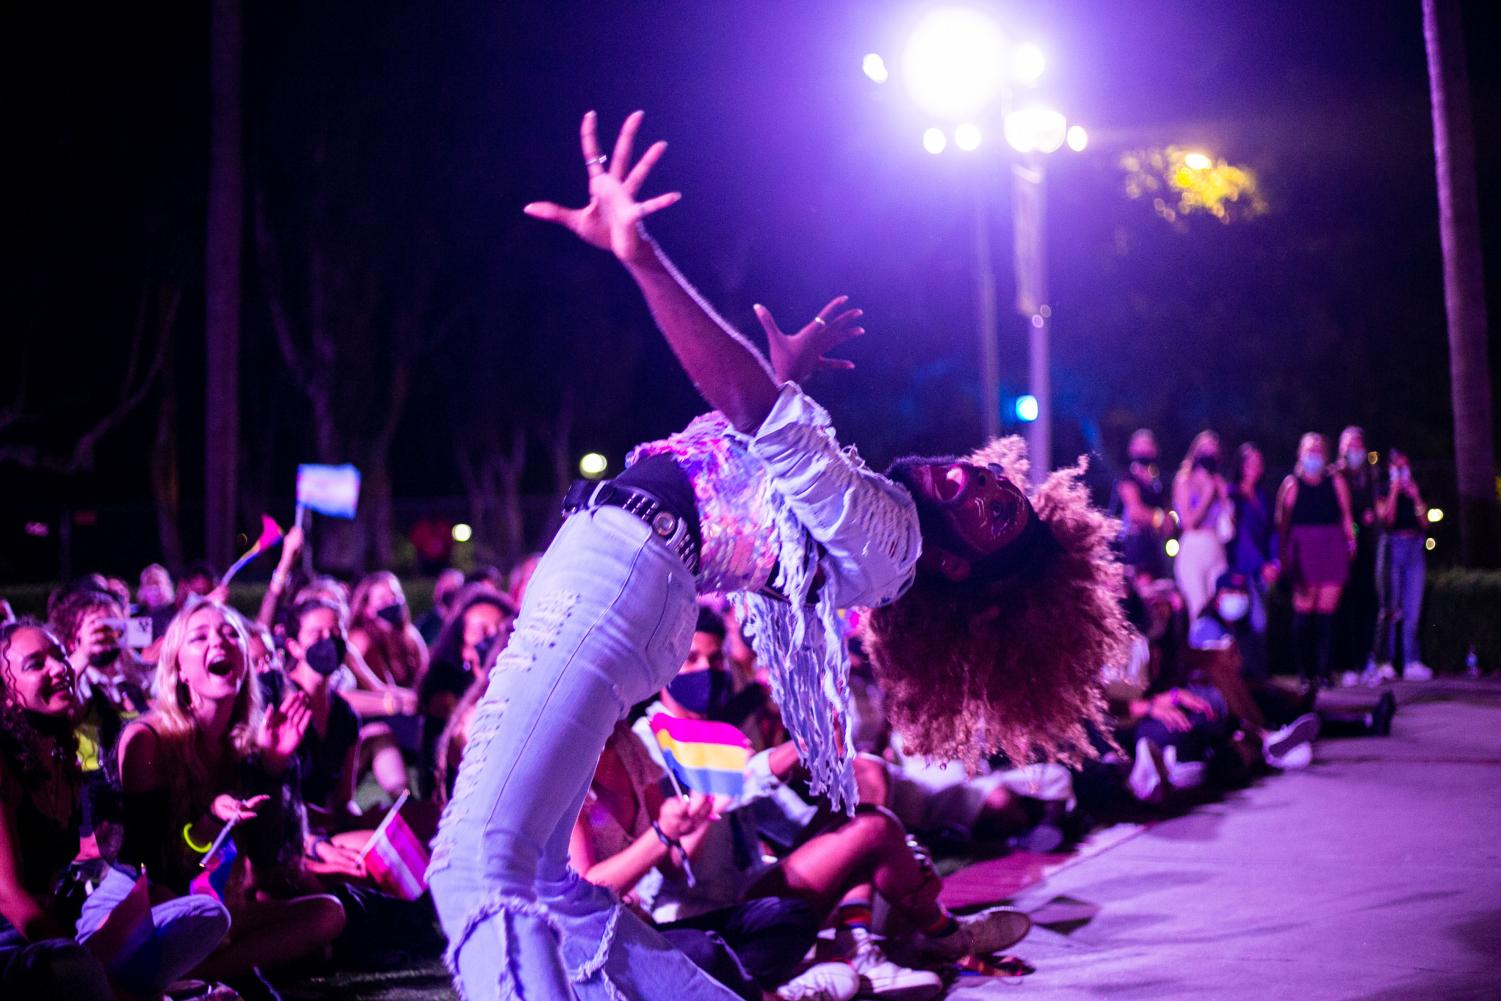 Amber St. James performing on stage in front of Hepner Hall during 2021 Dragstravaganza.